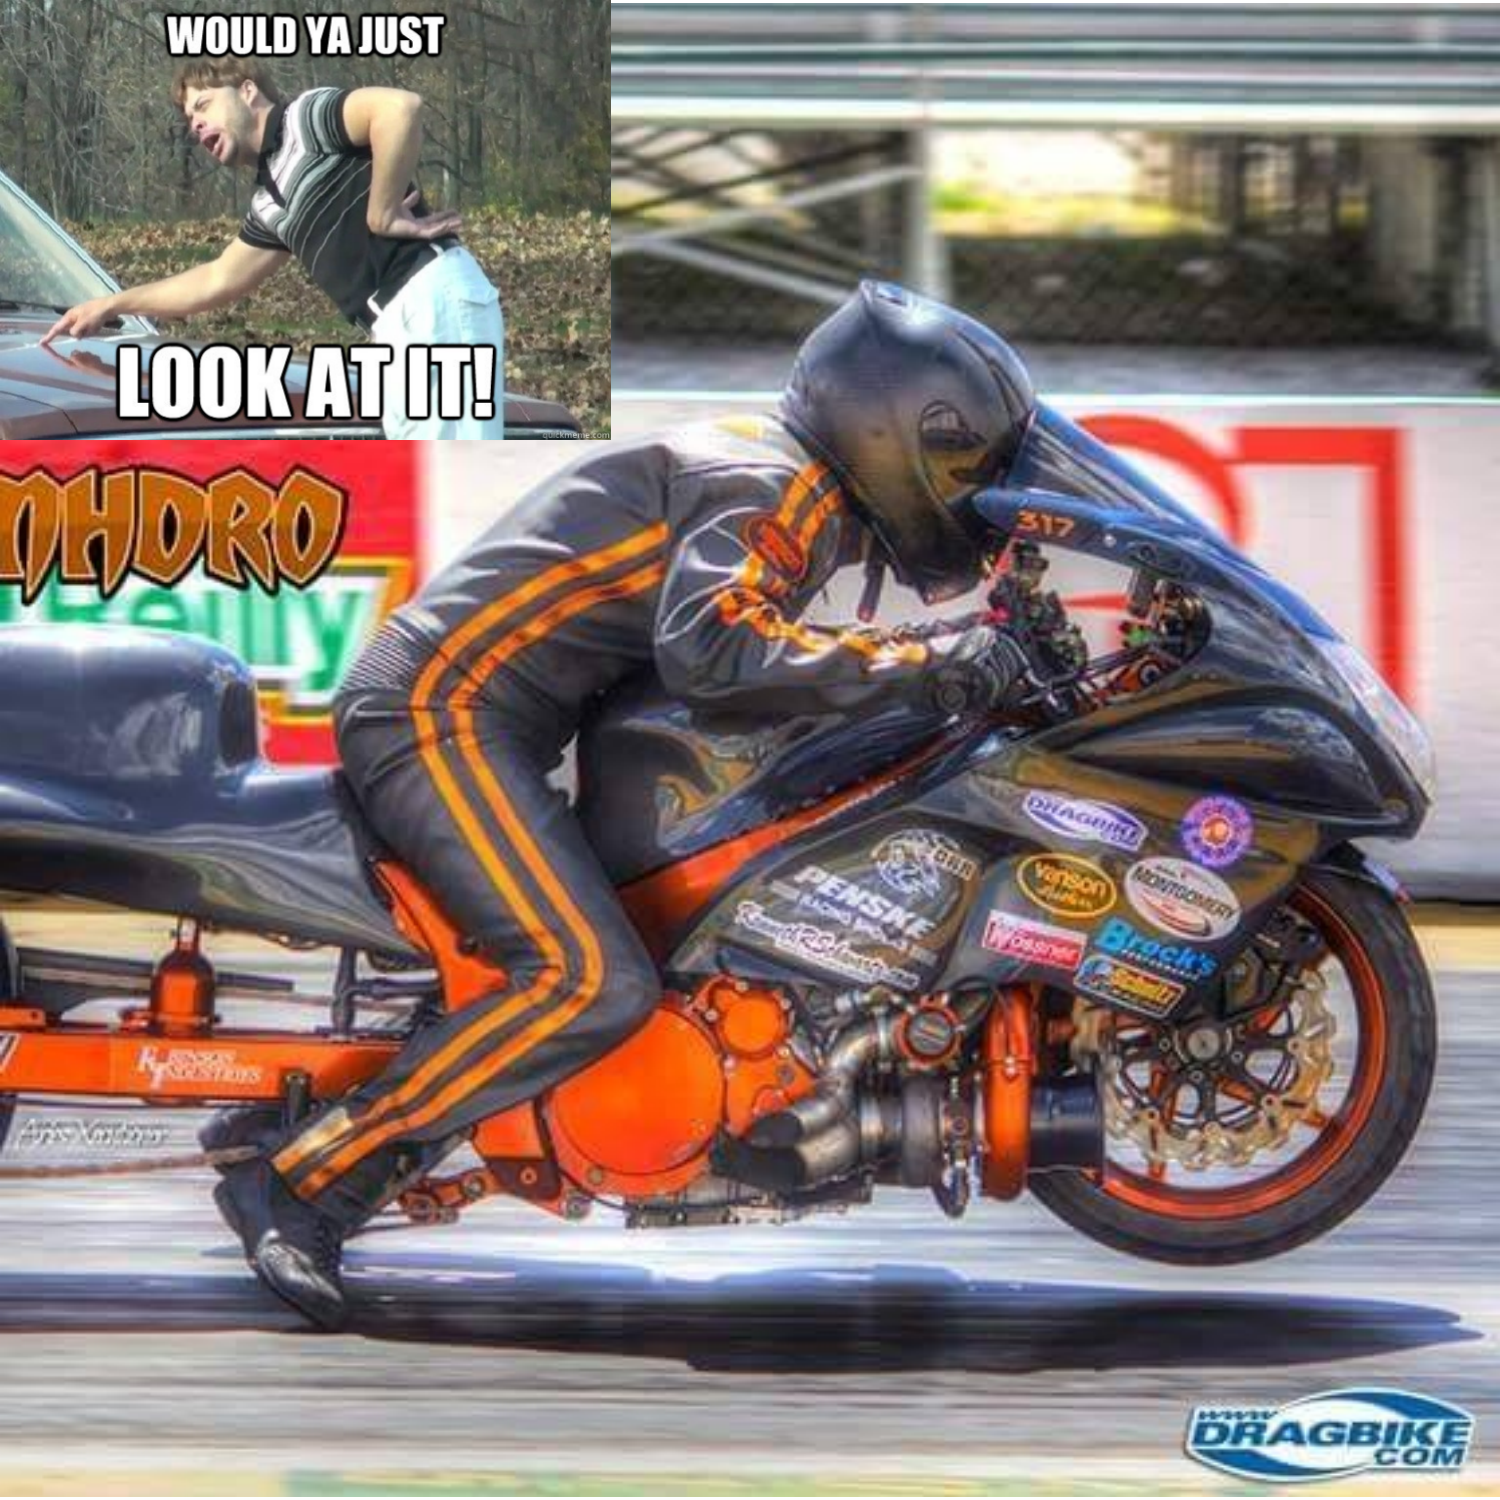 Delightful Pretty Sure This Picture Sums It All Up. #Carbon #Turbo #Hayabusa #Suzuki  #700hp #ProStreet #CarbonFiber #justlookatit #lookatit #mms #nhdro